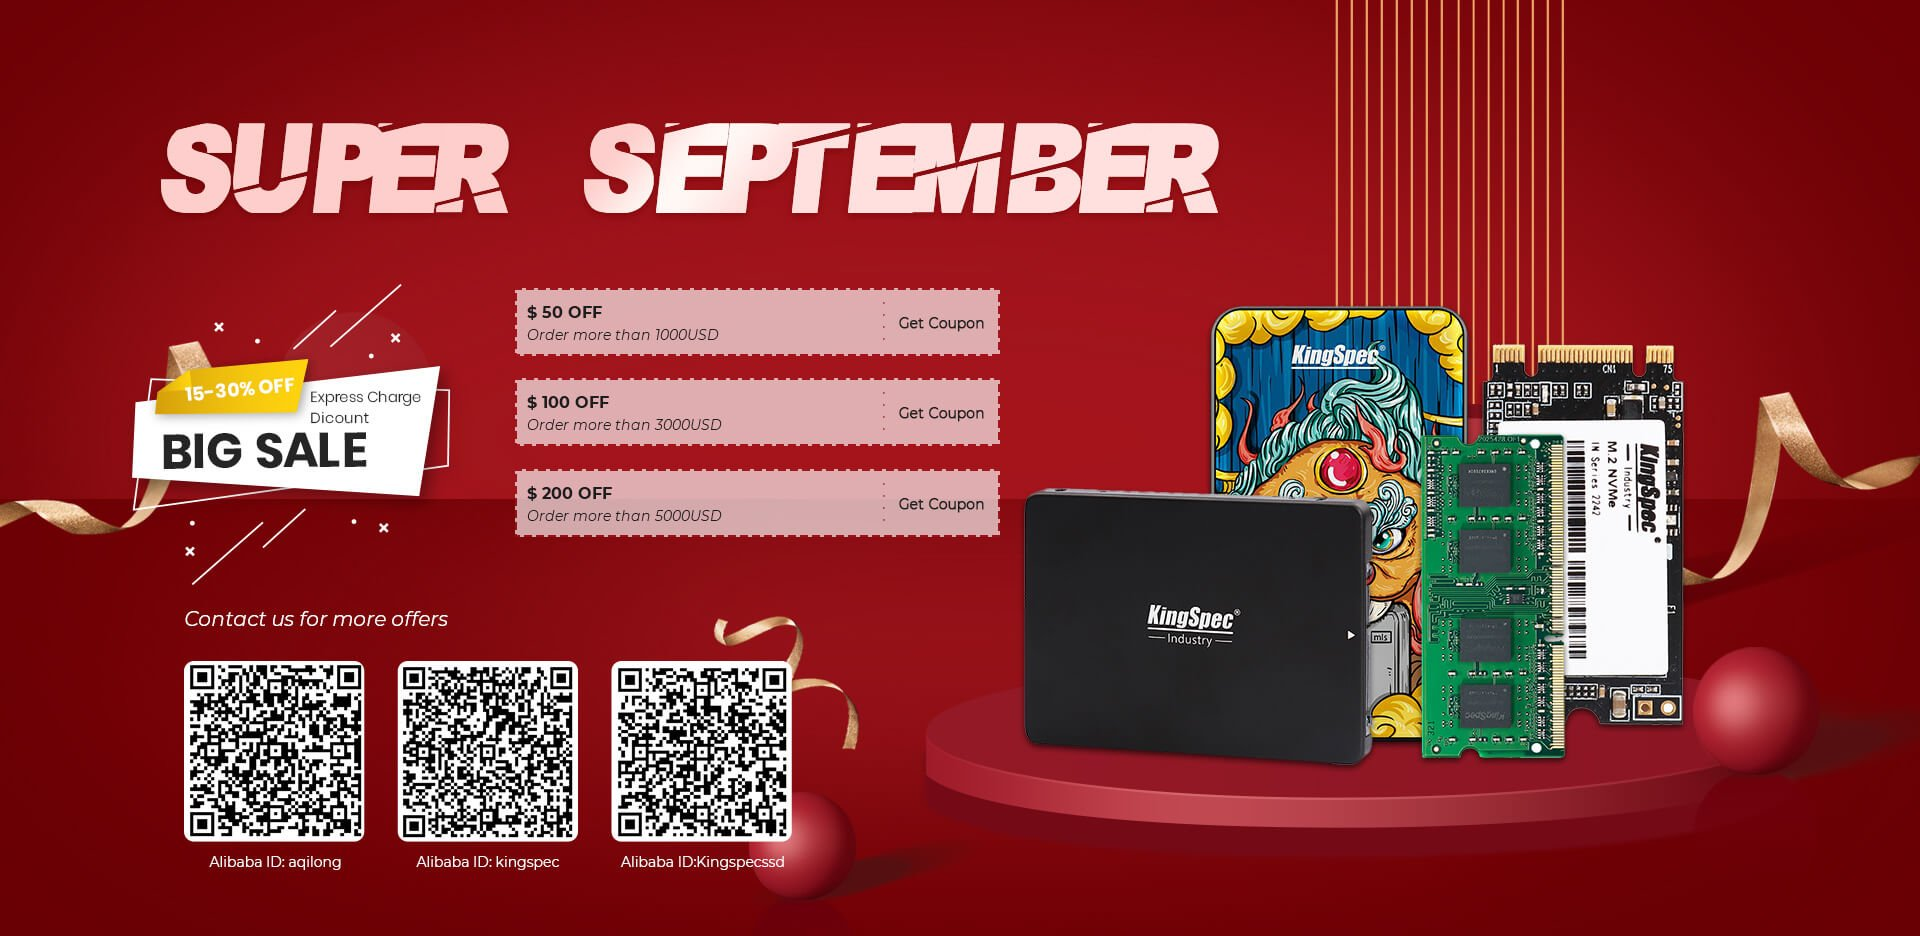 Super September is Coming